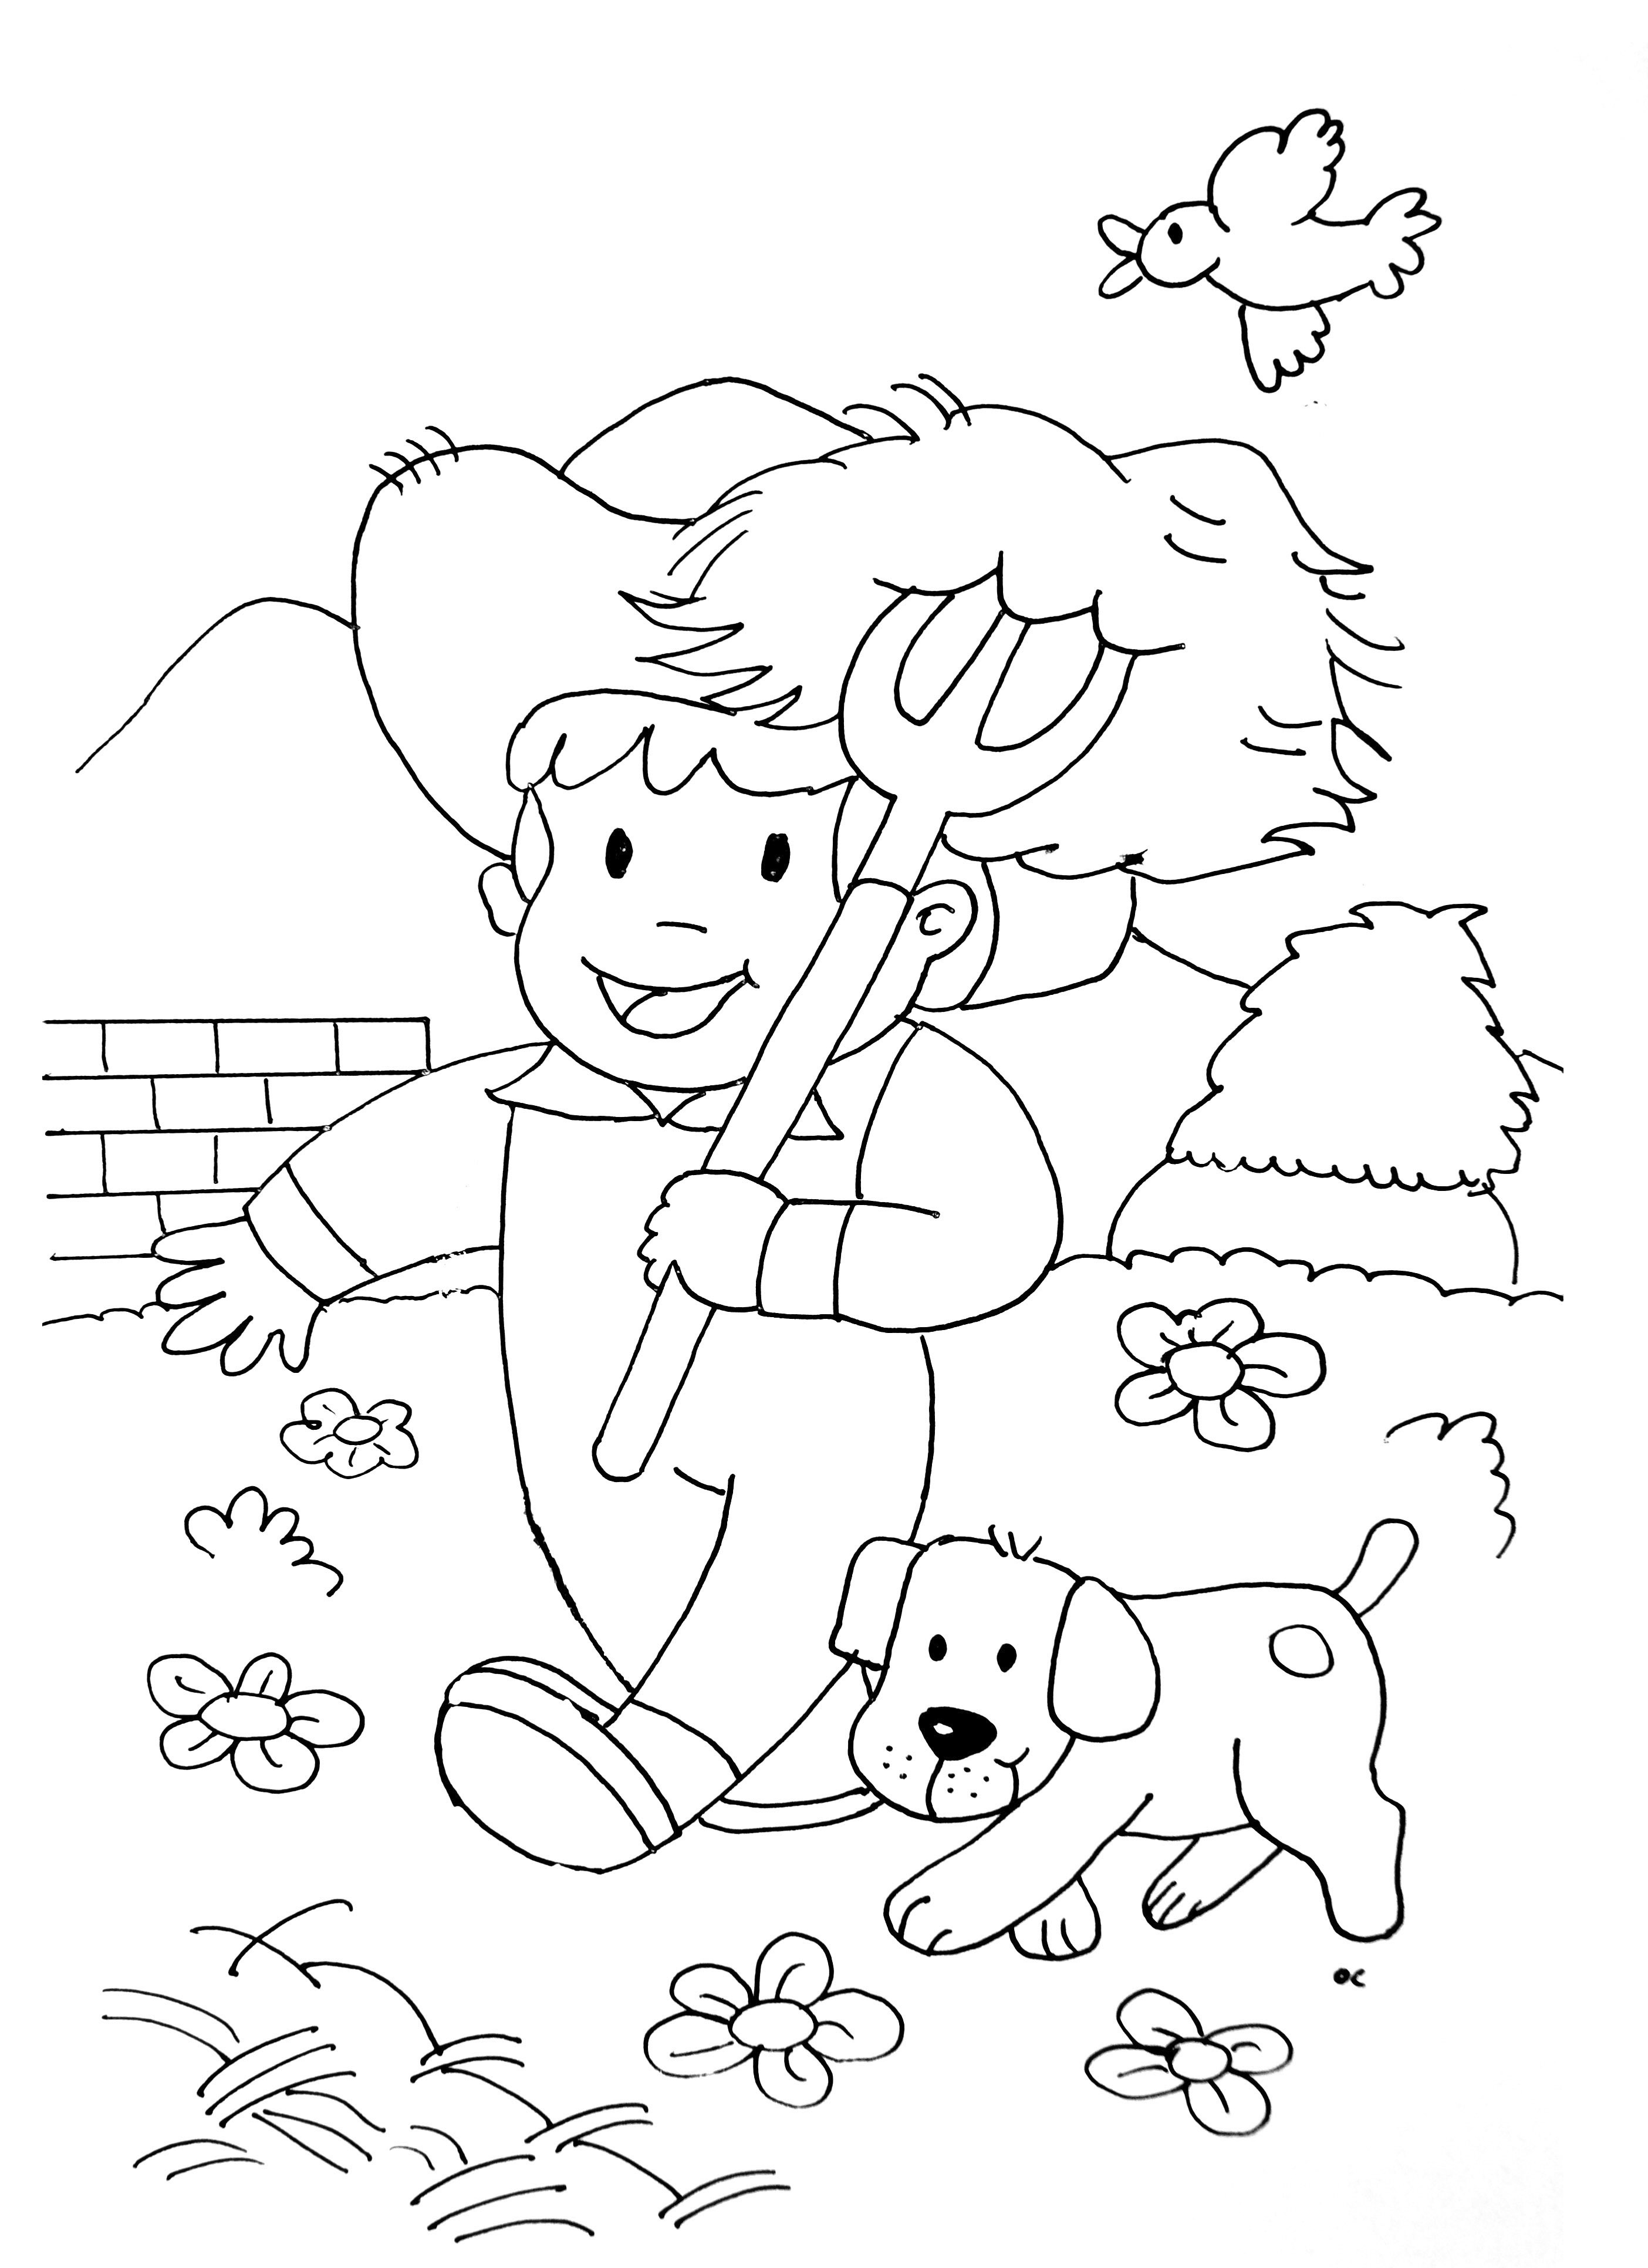 Farm animals coloring pages for toddlers - Farmer Kid With His Dog From The Gallery Kids Animals